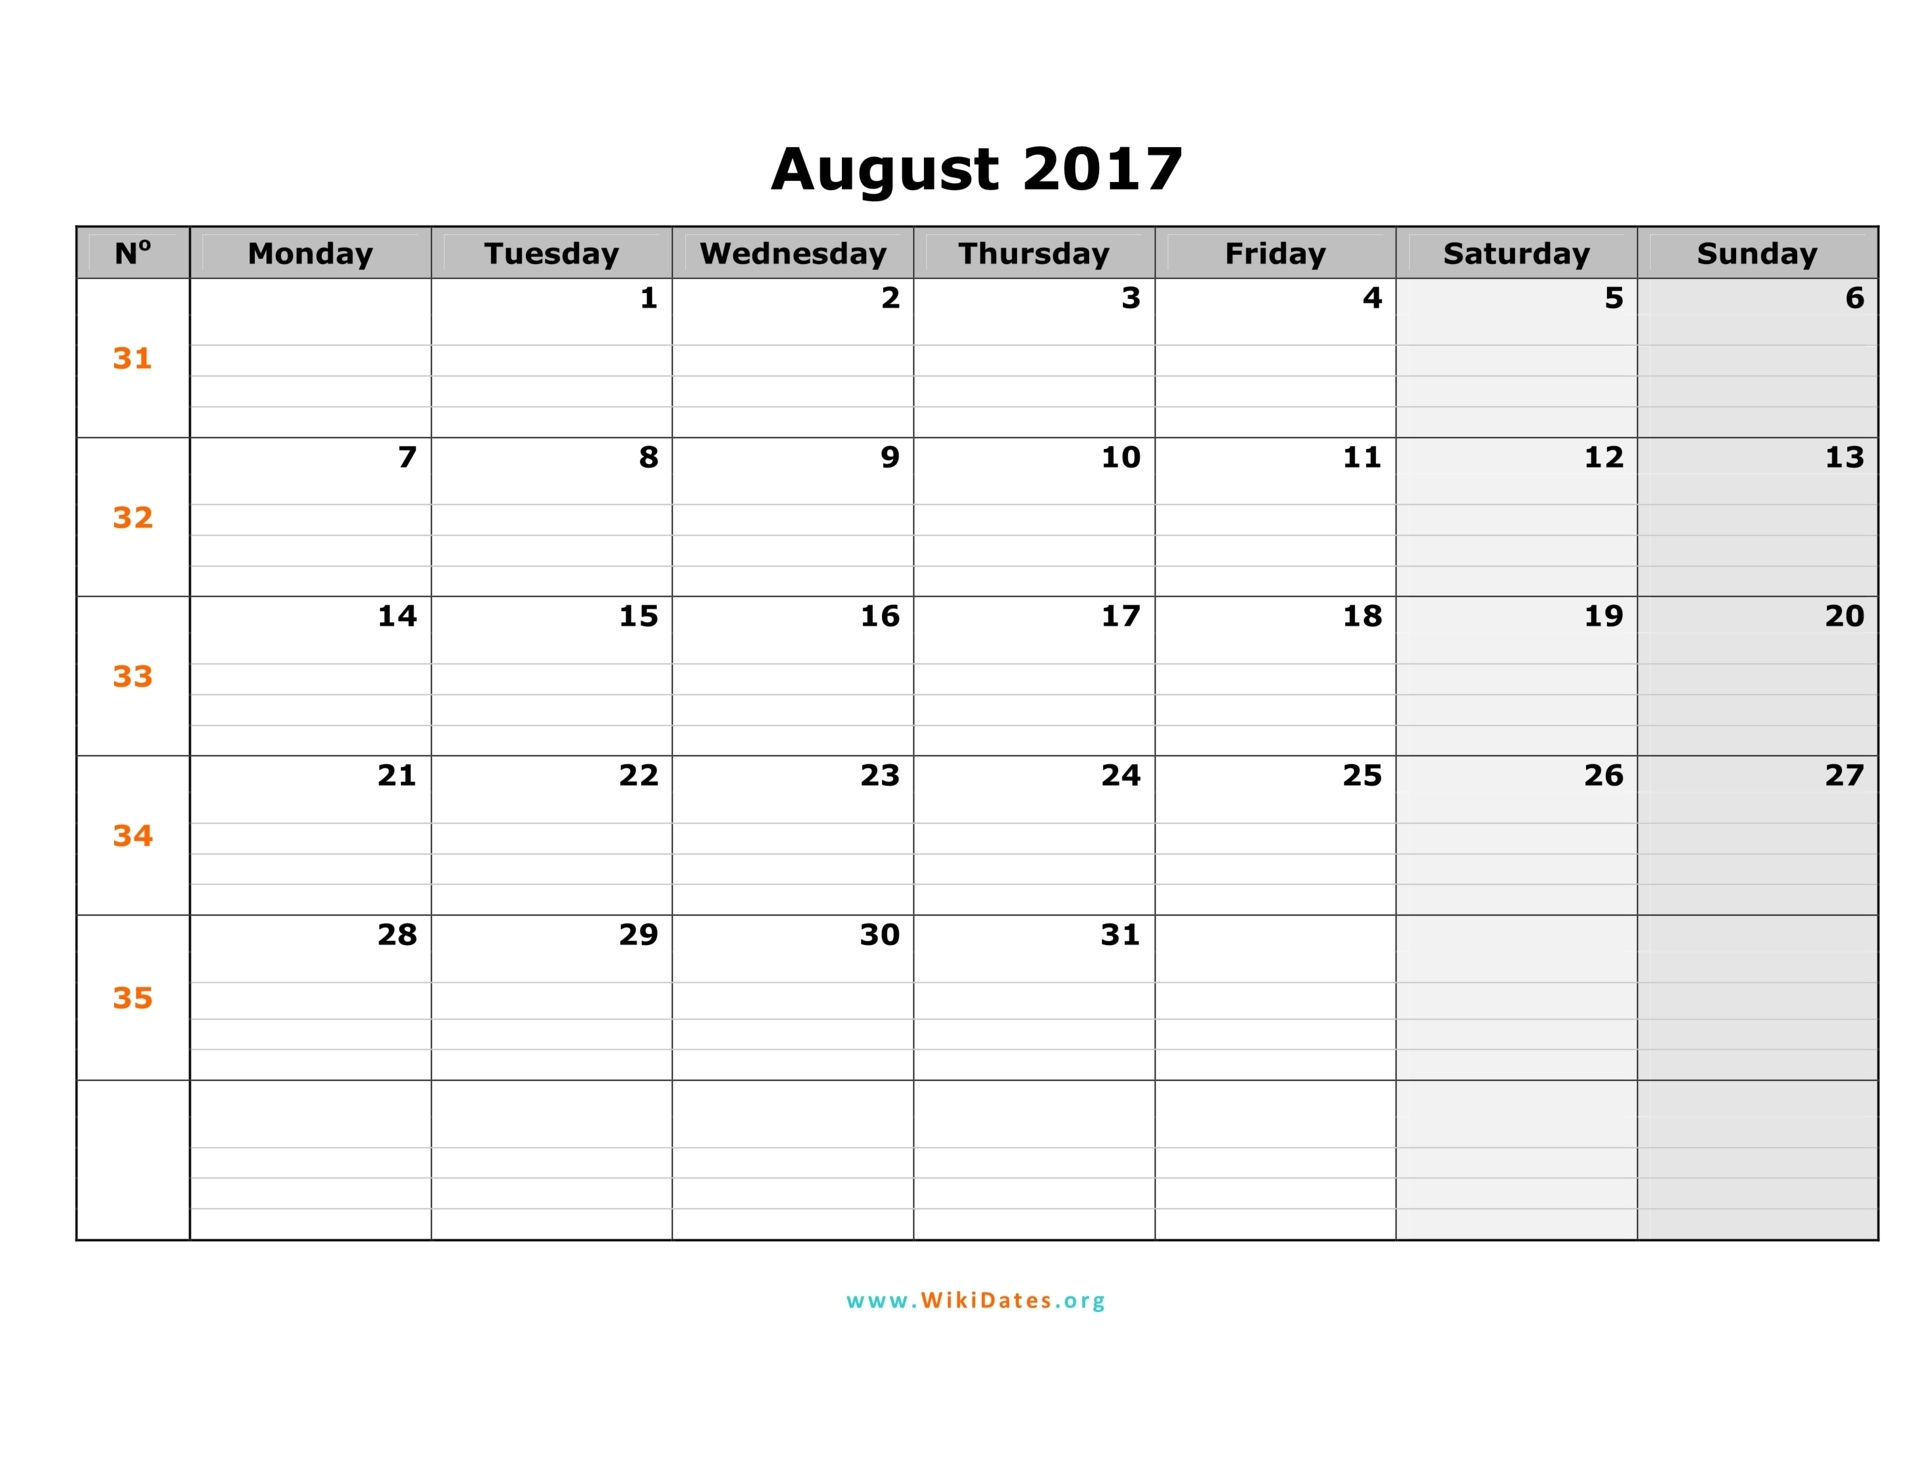 2017 Calendar One Page Vertical Monday Start - ATFP